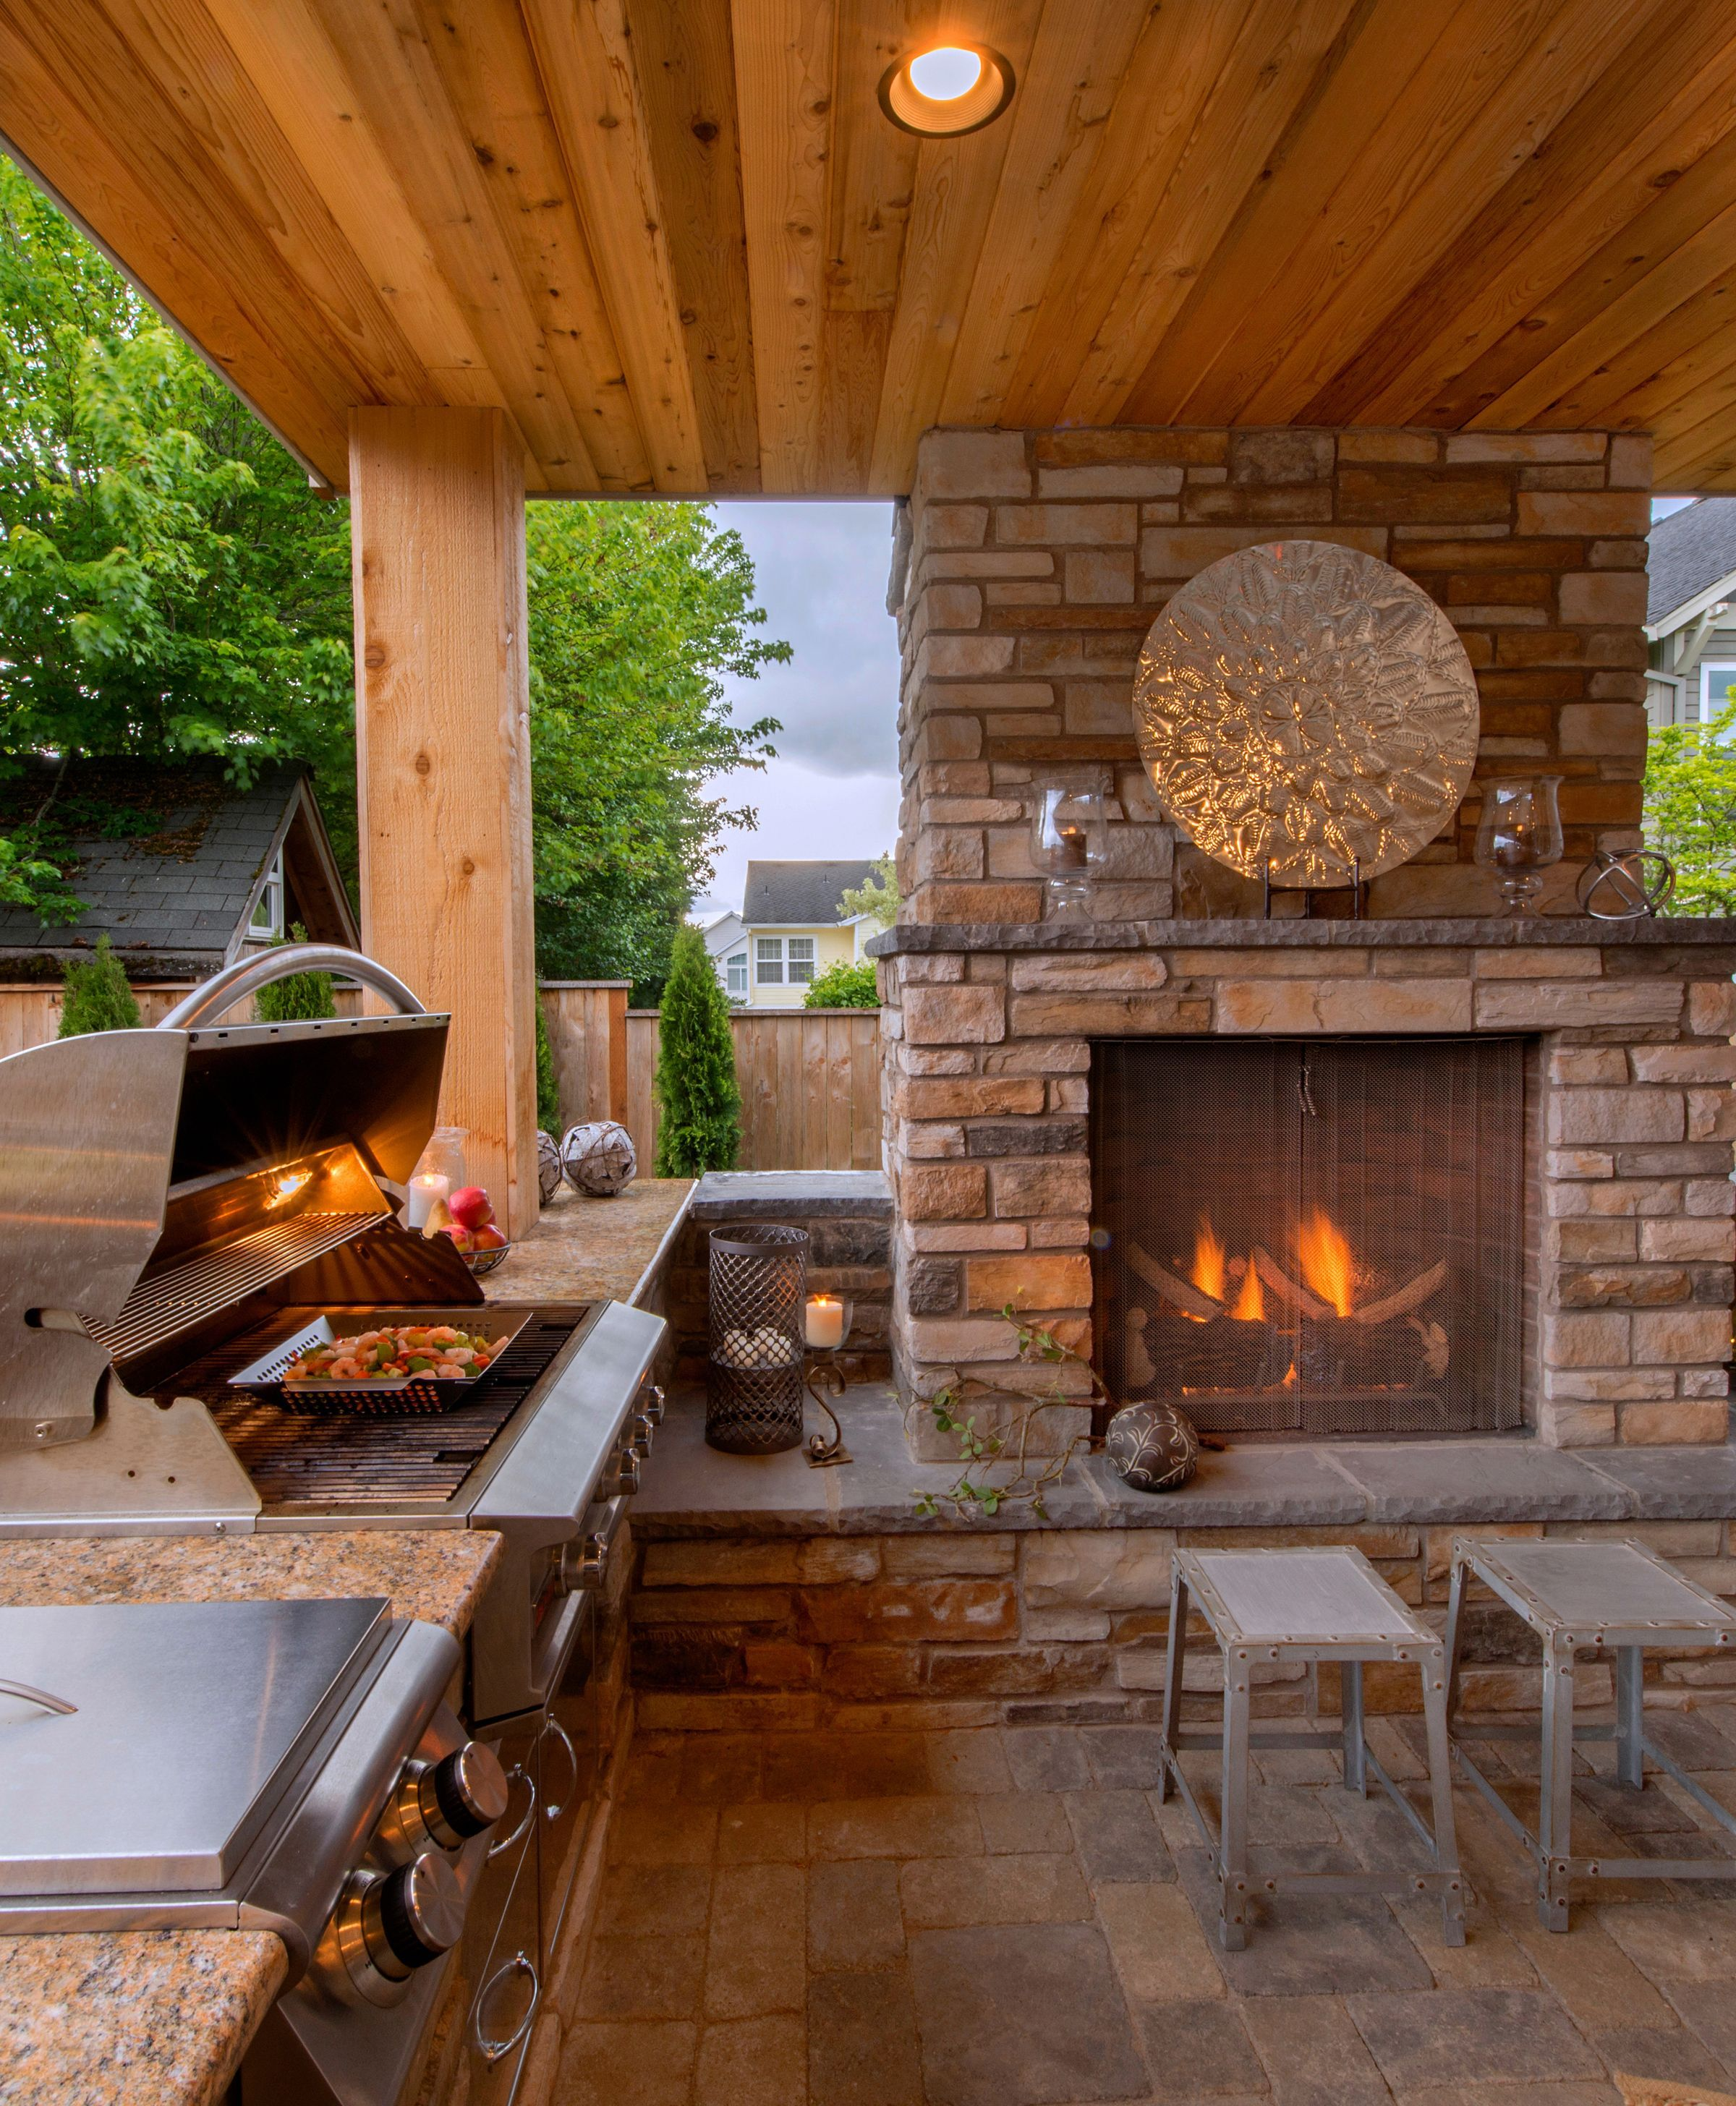 Cozy Outdoor Kitchen And Fireplace Http Www Paradiserestored Com Portfolio Seiple Prop Design Für Aussenküche Outdoor Küche Hinterhof Terrassen Designs